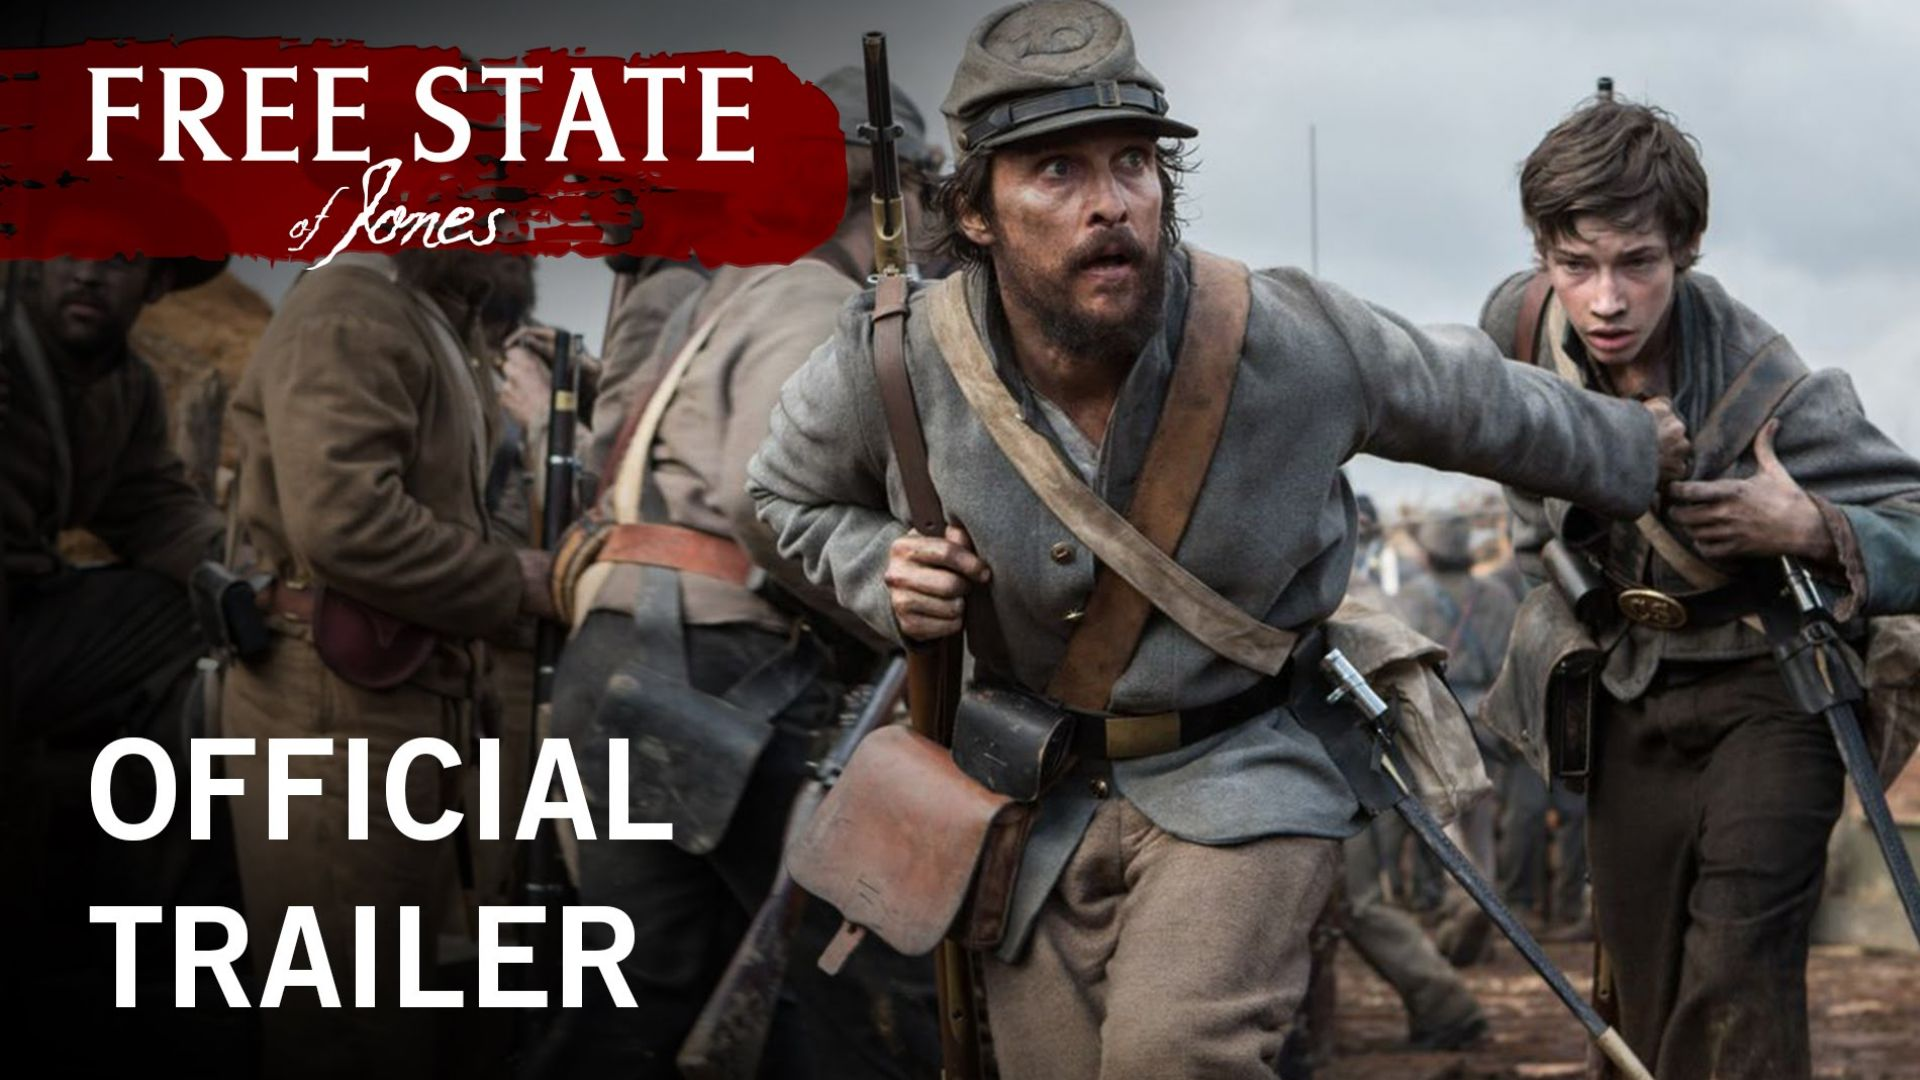 Free State Of Jones Official Trailer Stx Entertainment